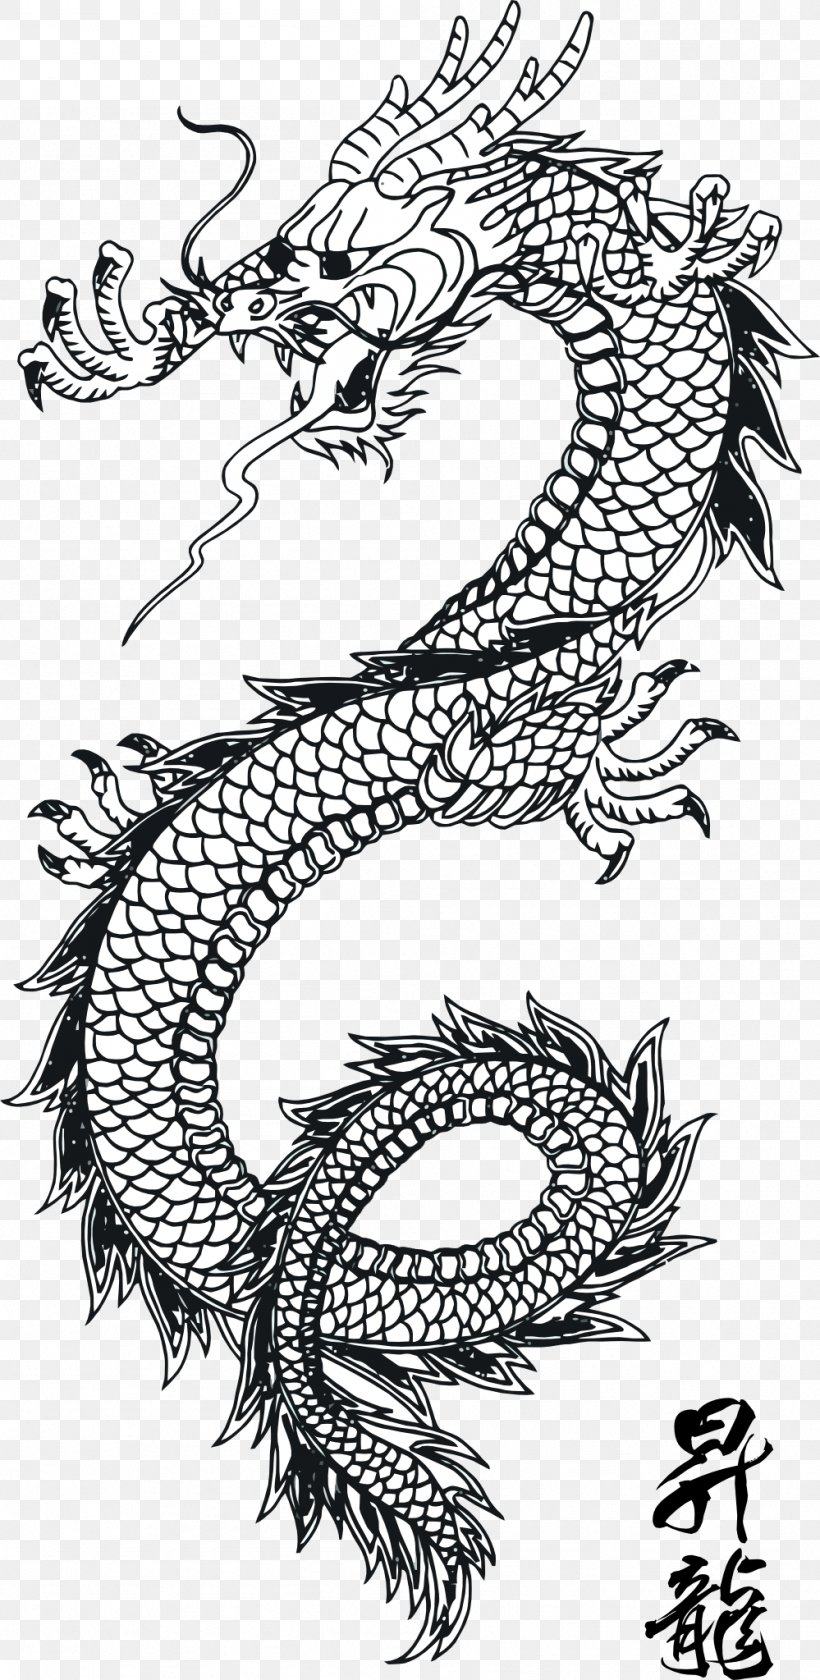 Dragon Clipart Black And White : dragon, clipart, black, white, Chinese, Dragon, 999x2047px,, China,, Black, White,, Dragon,, Download